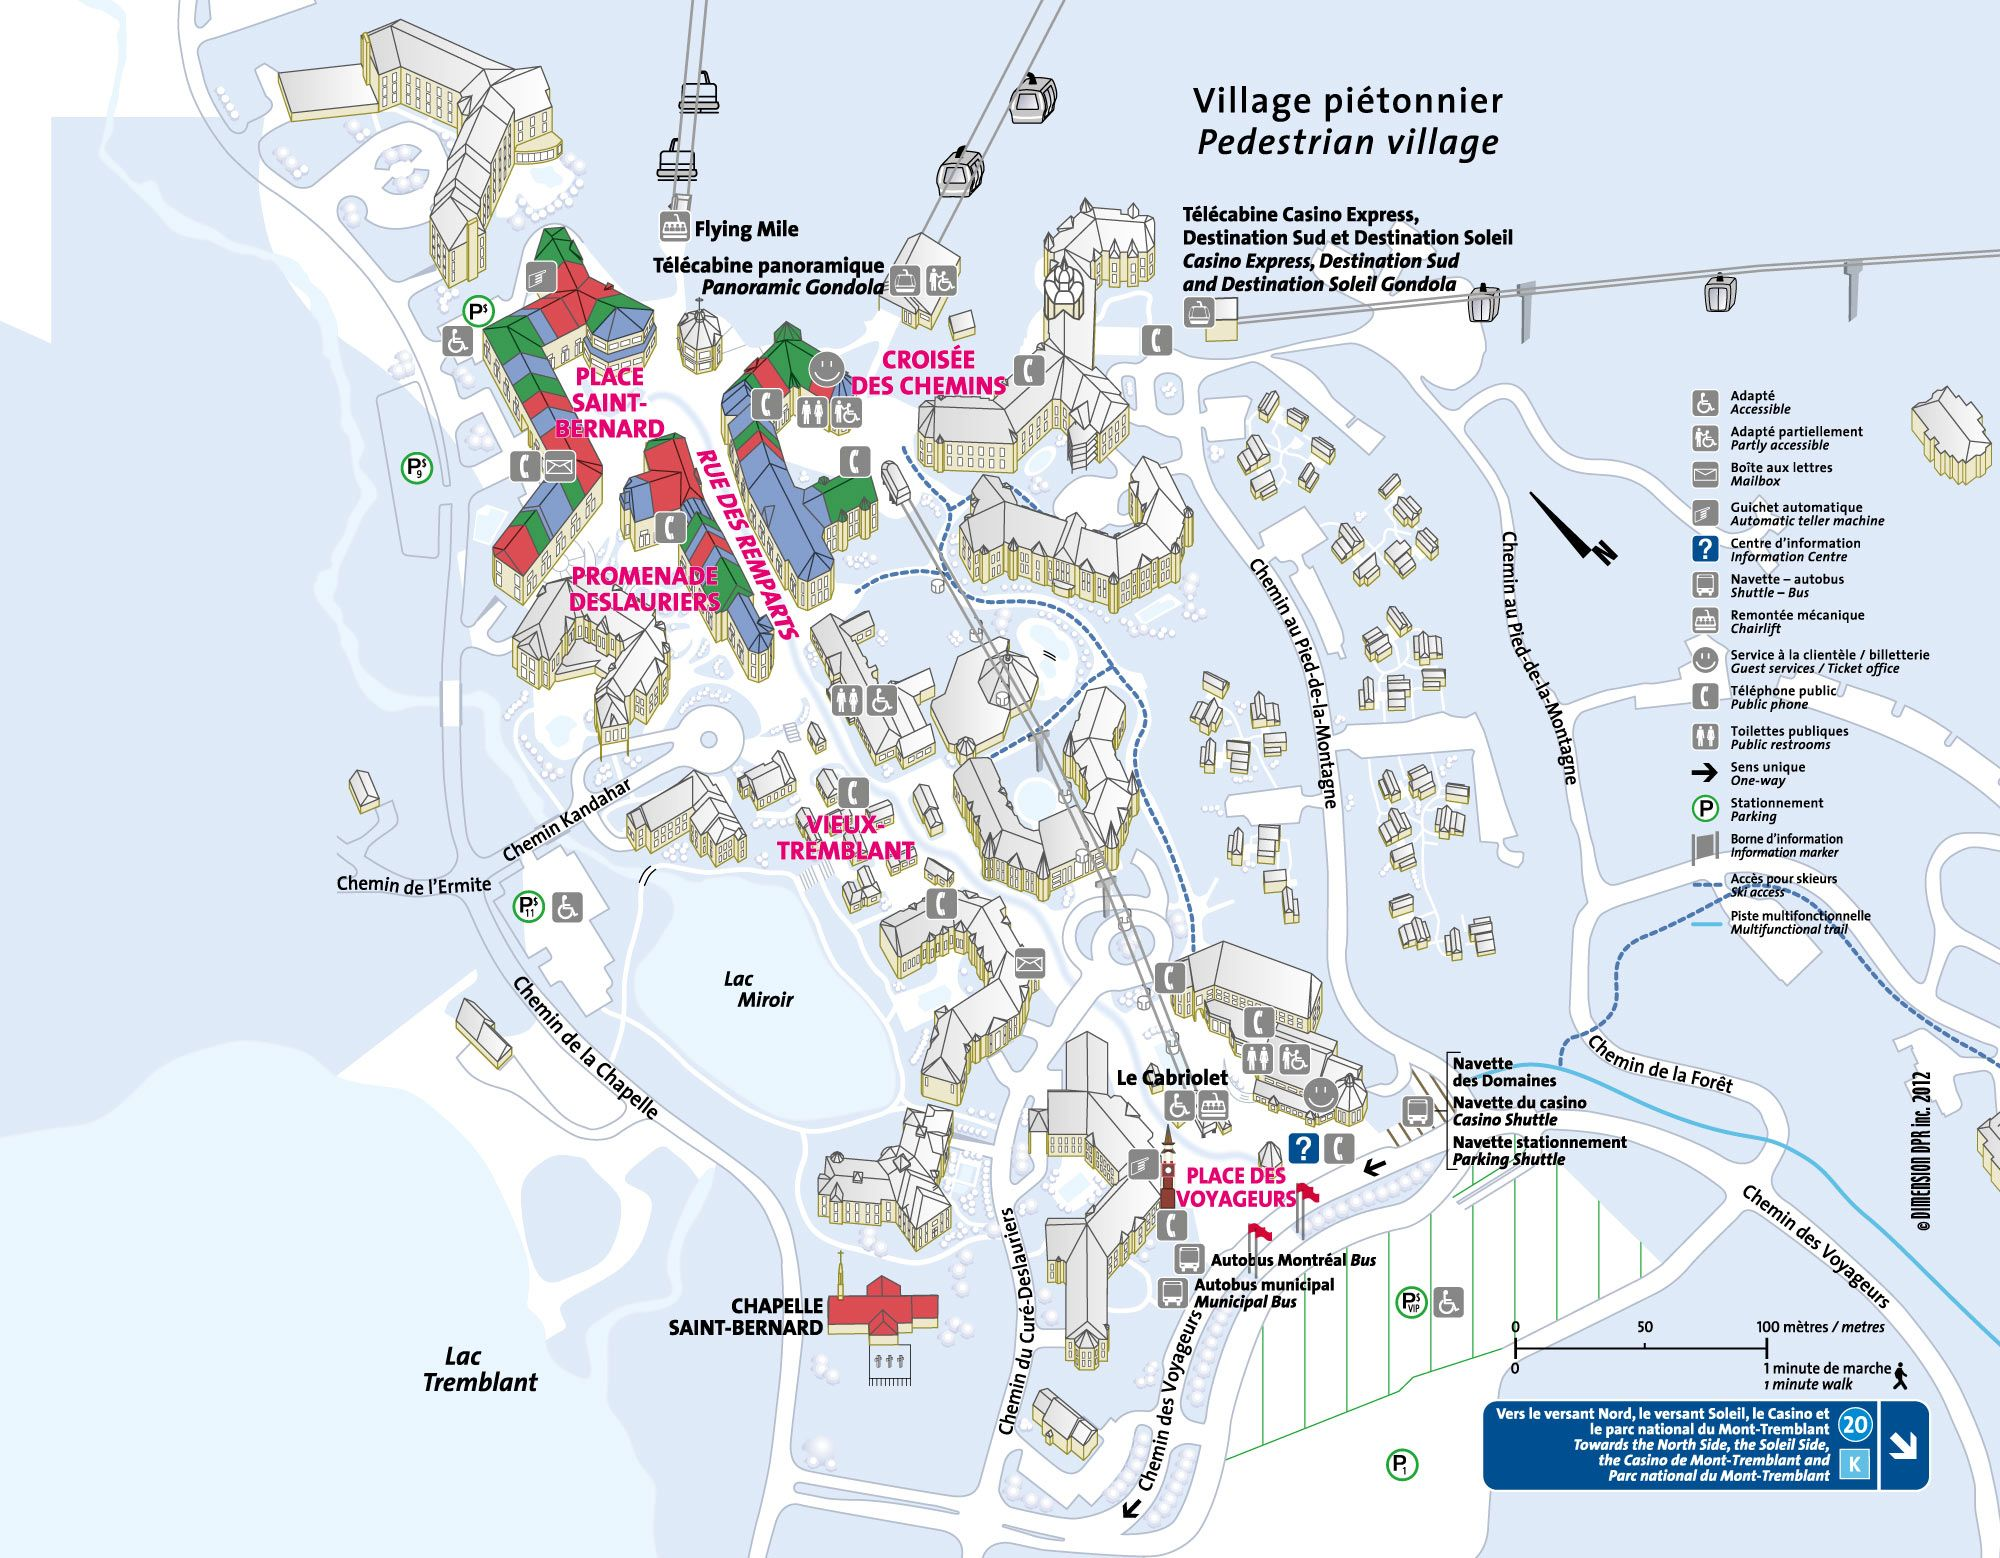 Mont Tremblant Village Map Pedestrian Village Map   Tremblant Resort   a friend says this is